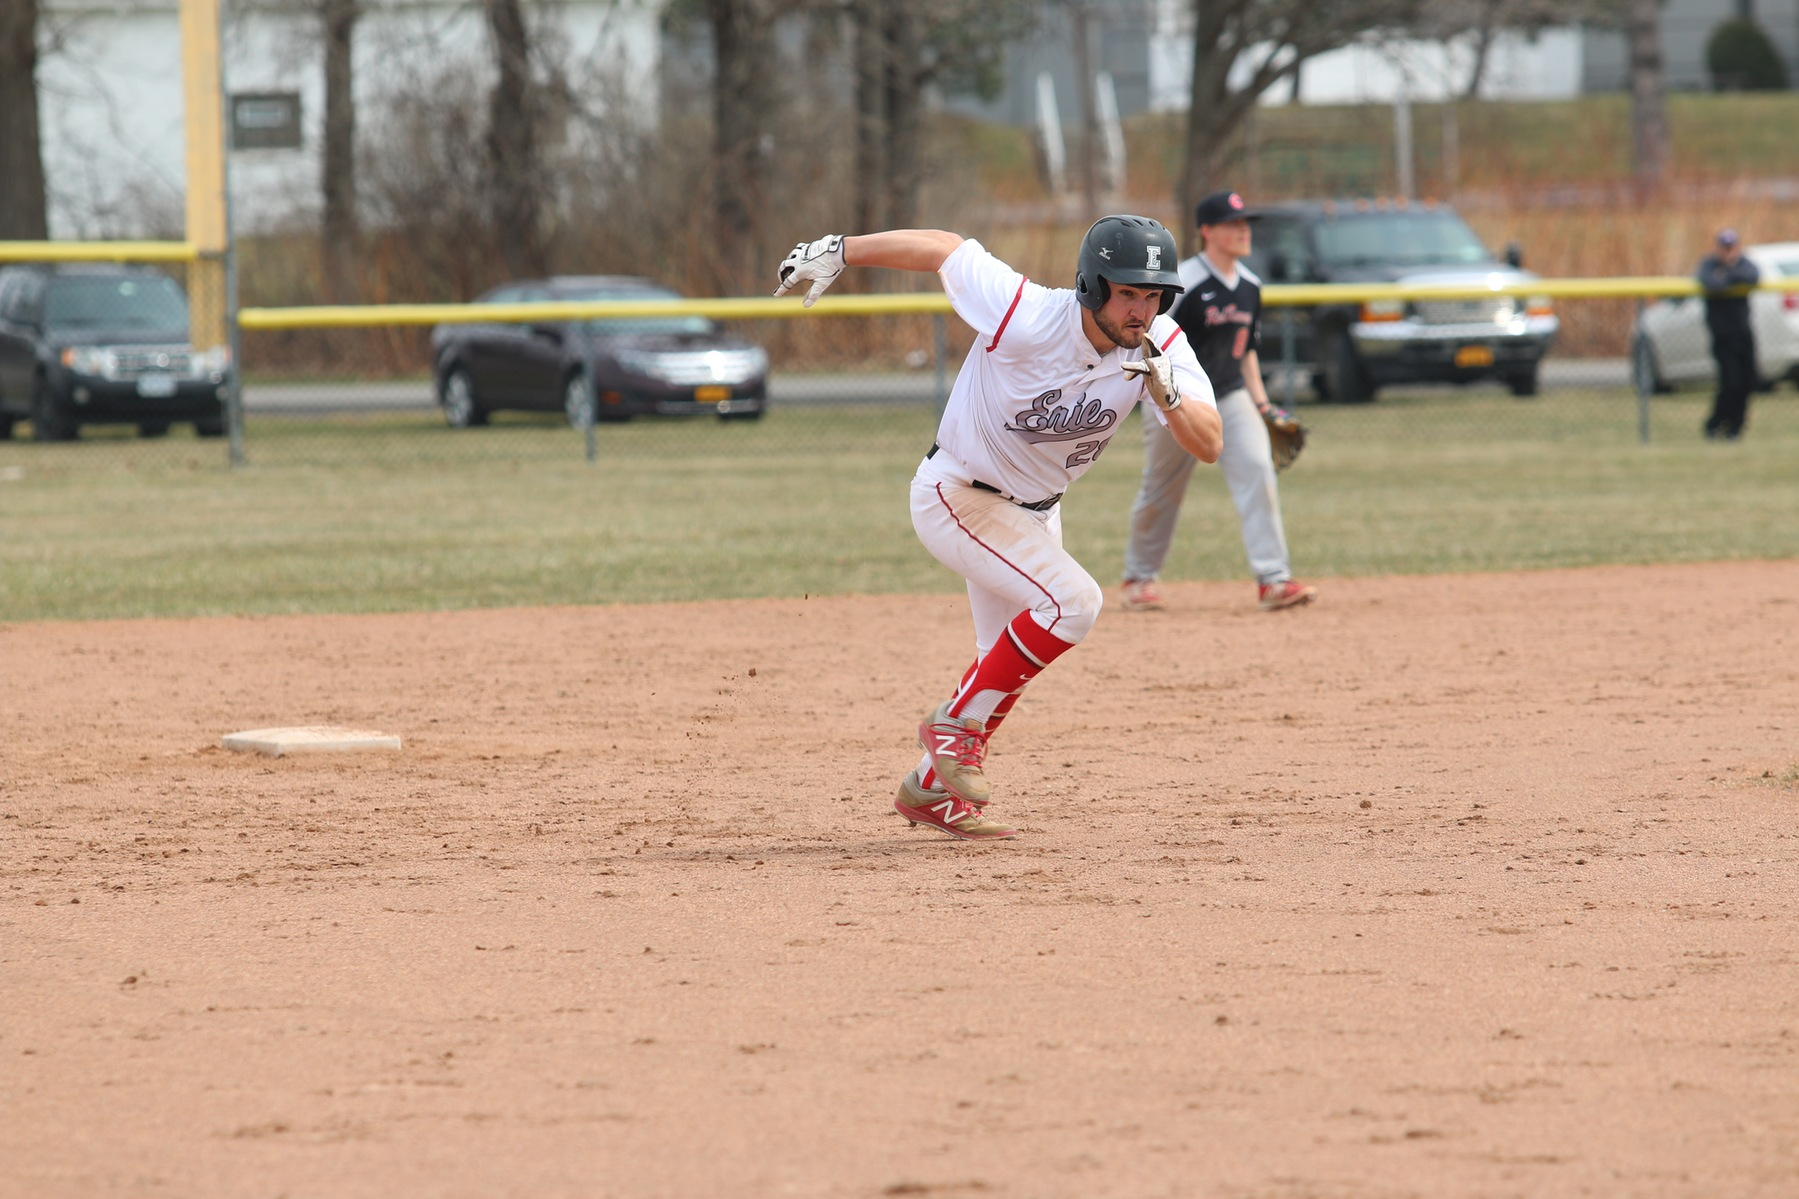 Baseball Picks Up 3 Wins Over Corning Community College Over Weekend